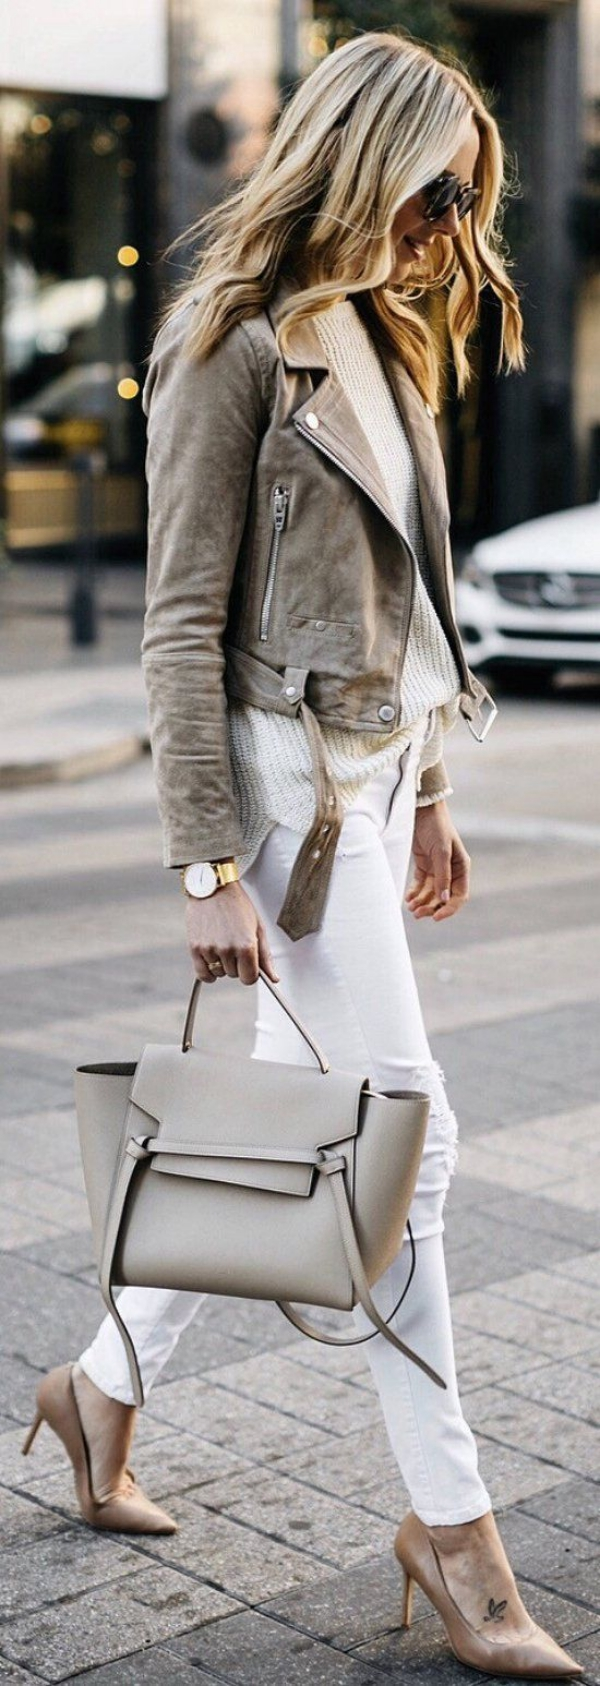 Autumn-Fashion-Outfits-Ideas-26